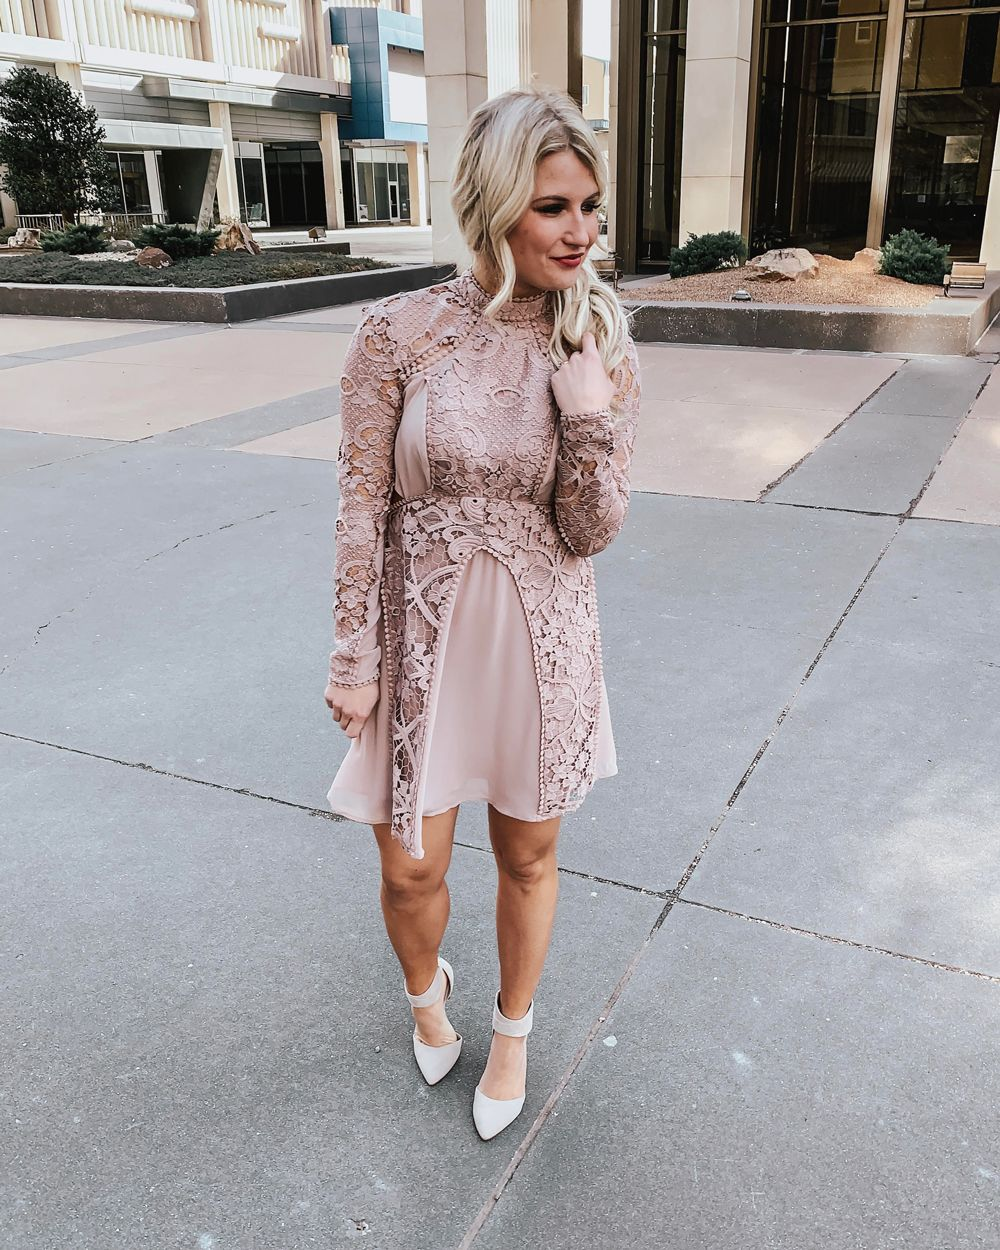 Date Night Outfits Unique Date Ideas That Won T Break The Bank Mirror And Thread Spring Wedding Guest Dress Wedding Guest Dress Dresses [ 1250 x 1000 Pixel ]